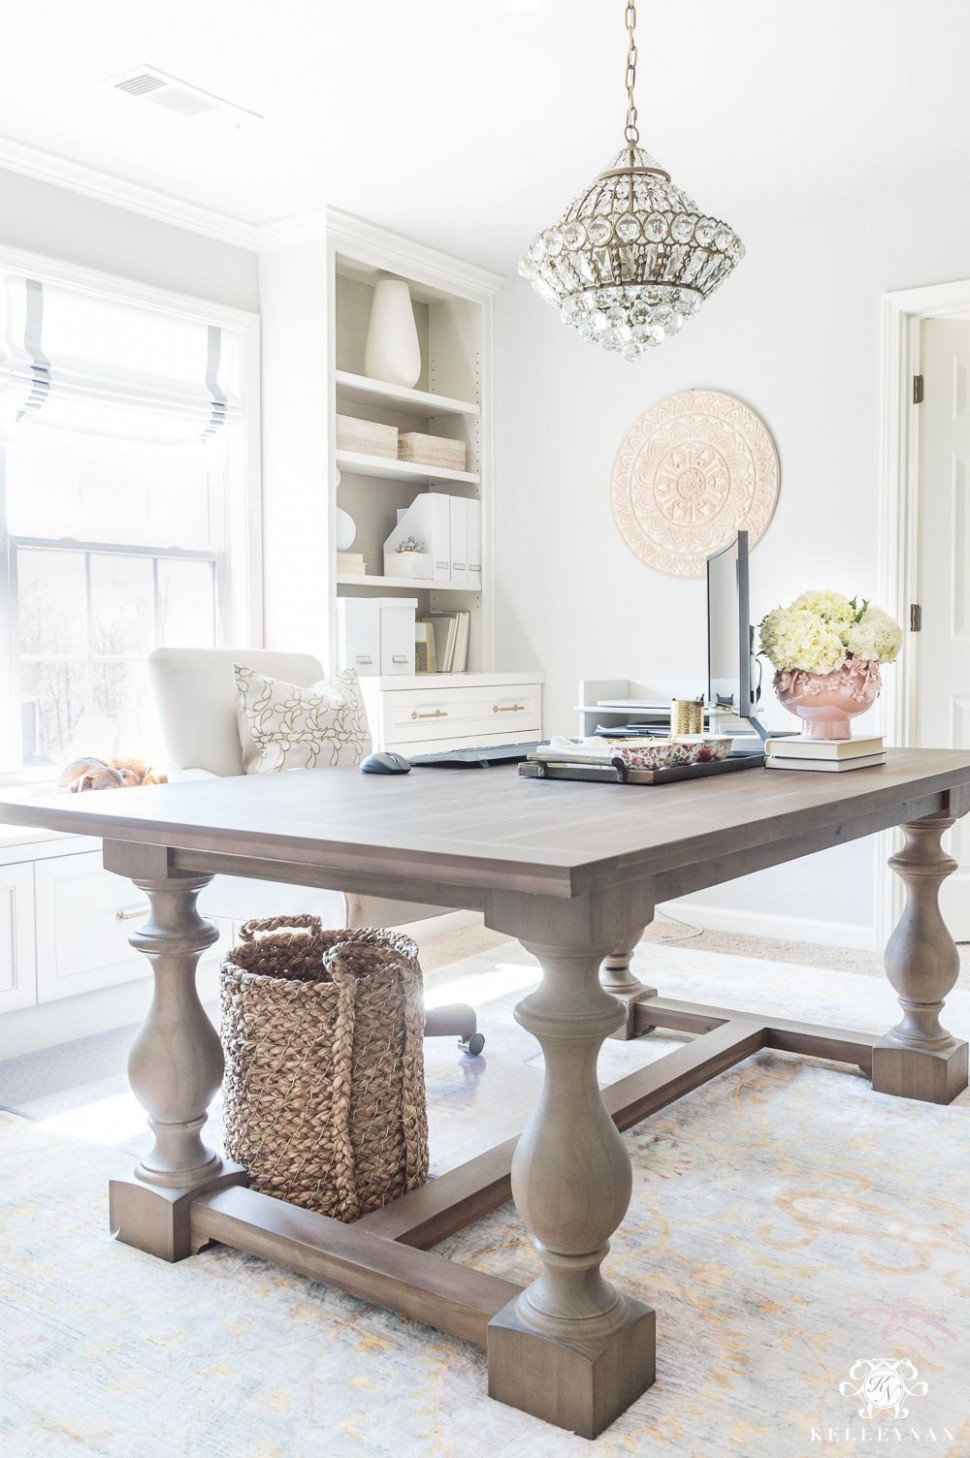 Home Office with Large Table Desk Ideas  Home office decor, Home  - Home Office Table Ideas